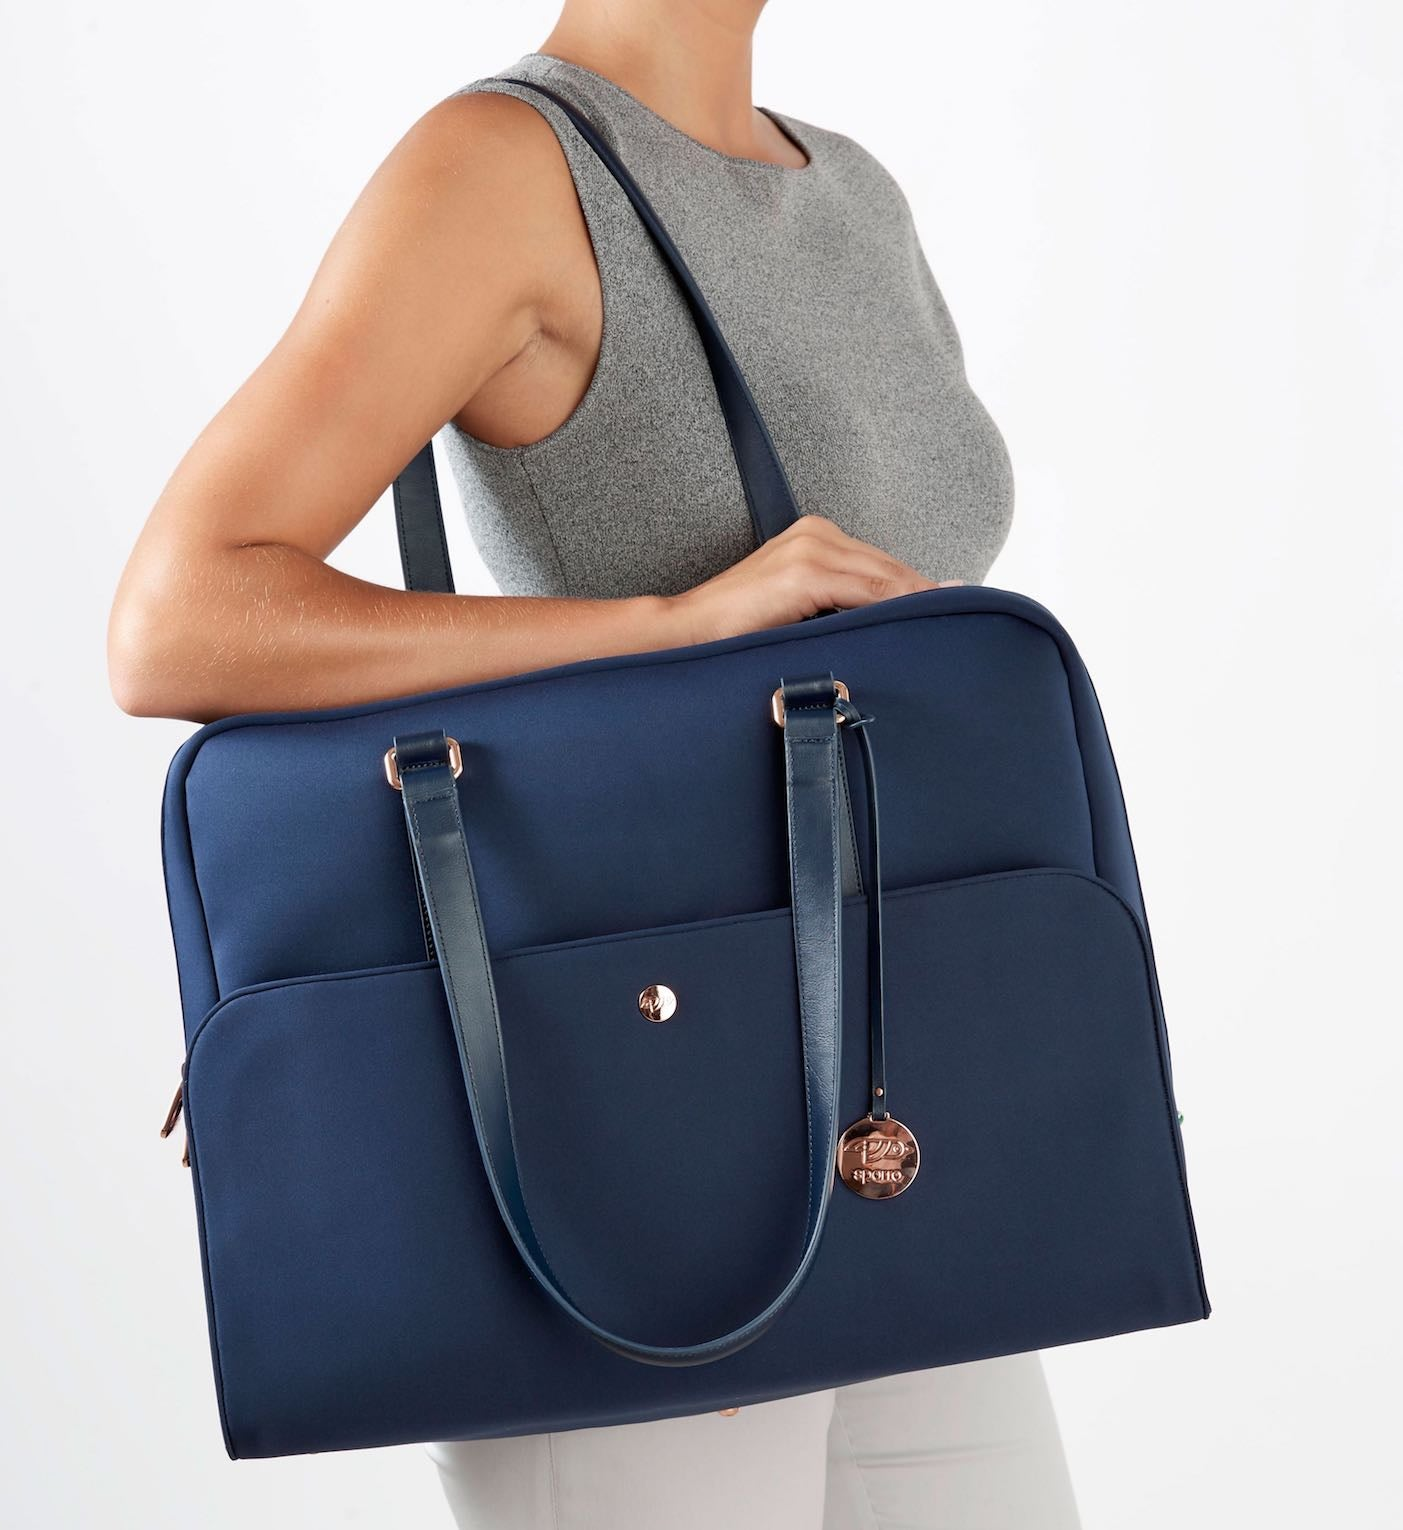 Sparro Designs Luxe neoprene and leather Carry-All's